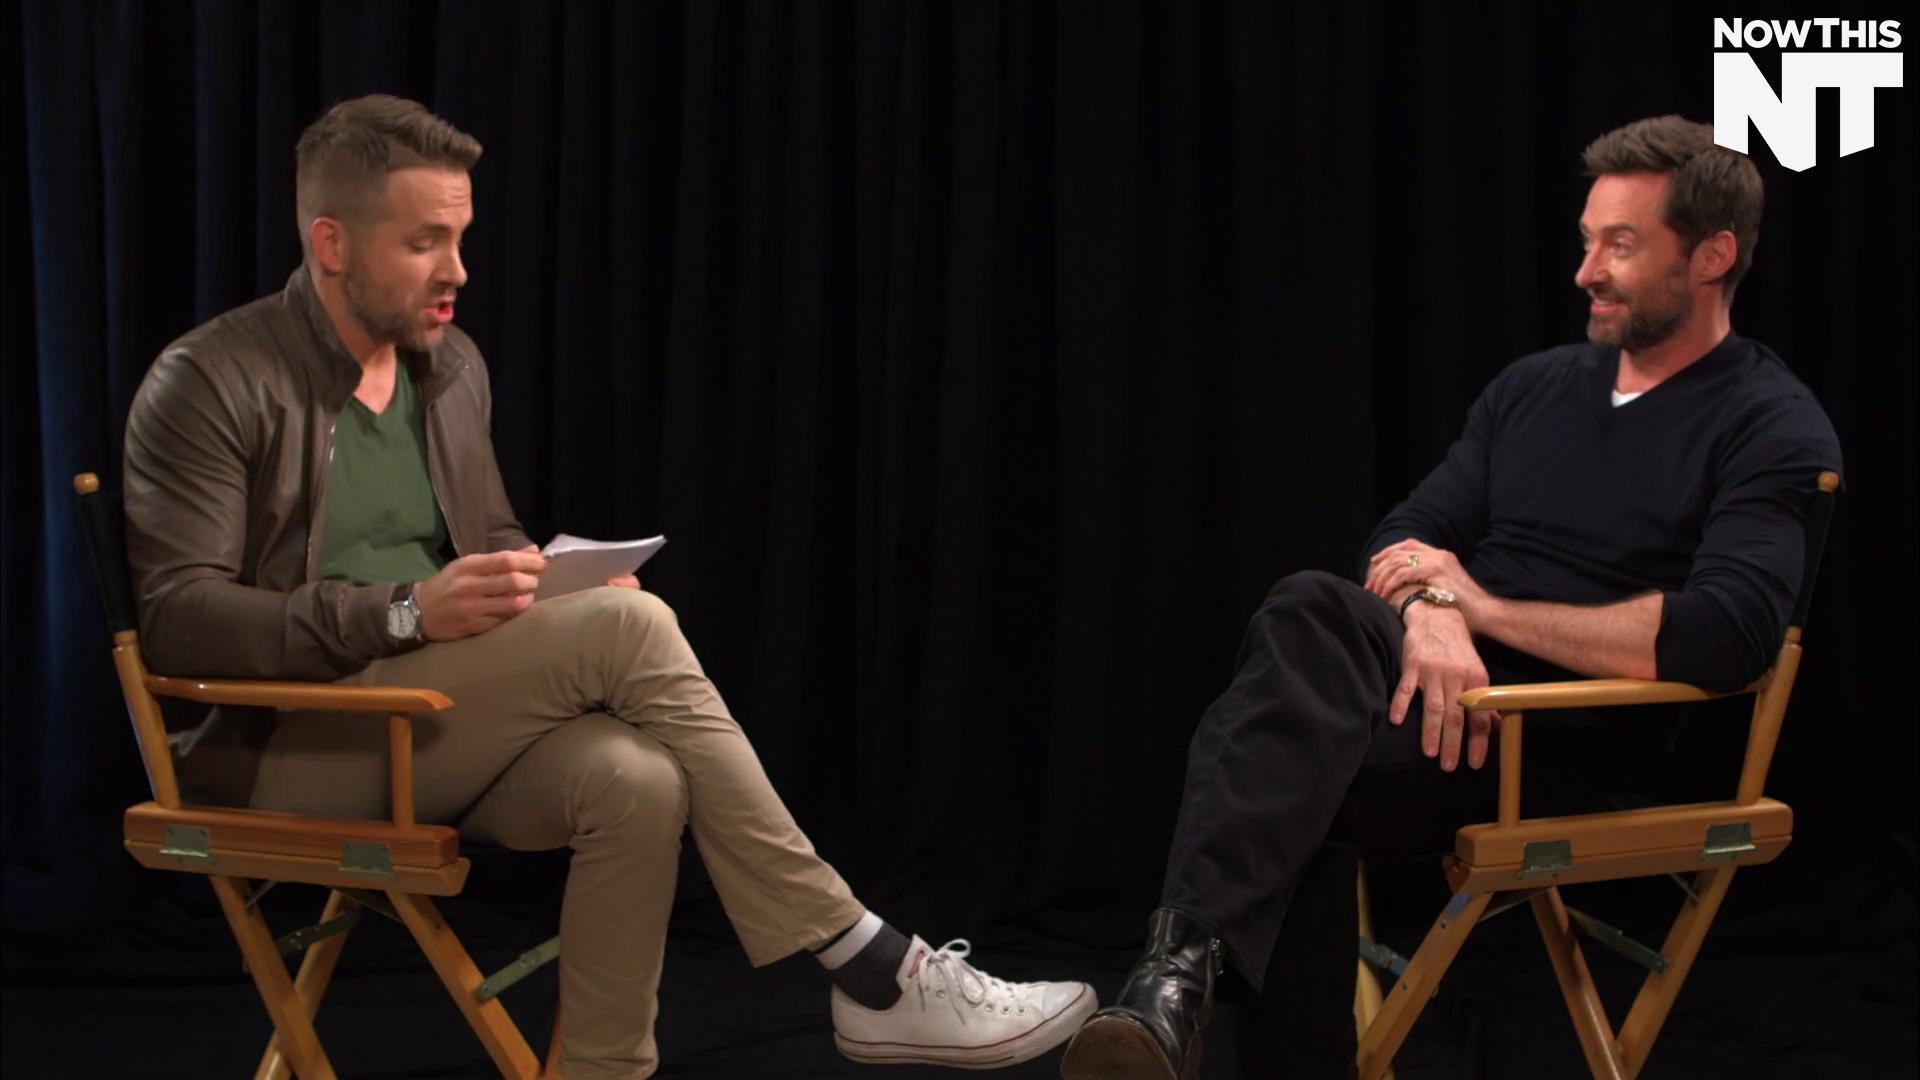 Ryan Reynolds Interviewed Hugh Jackman